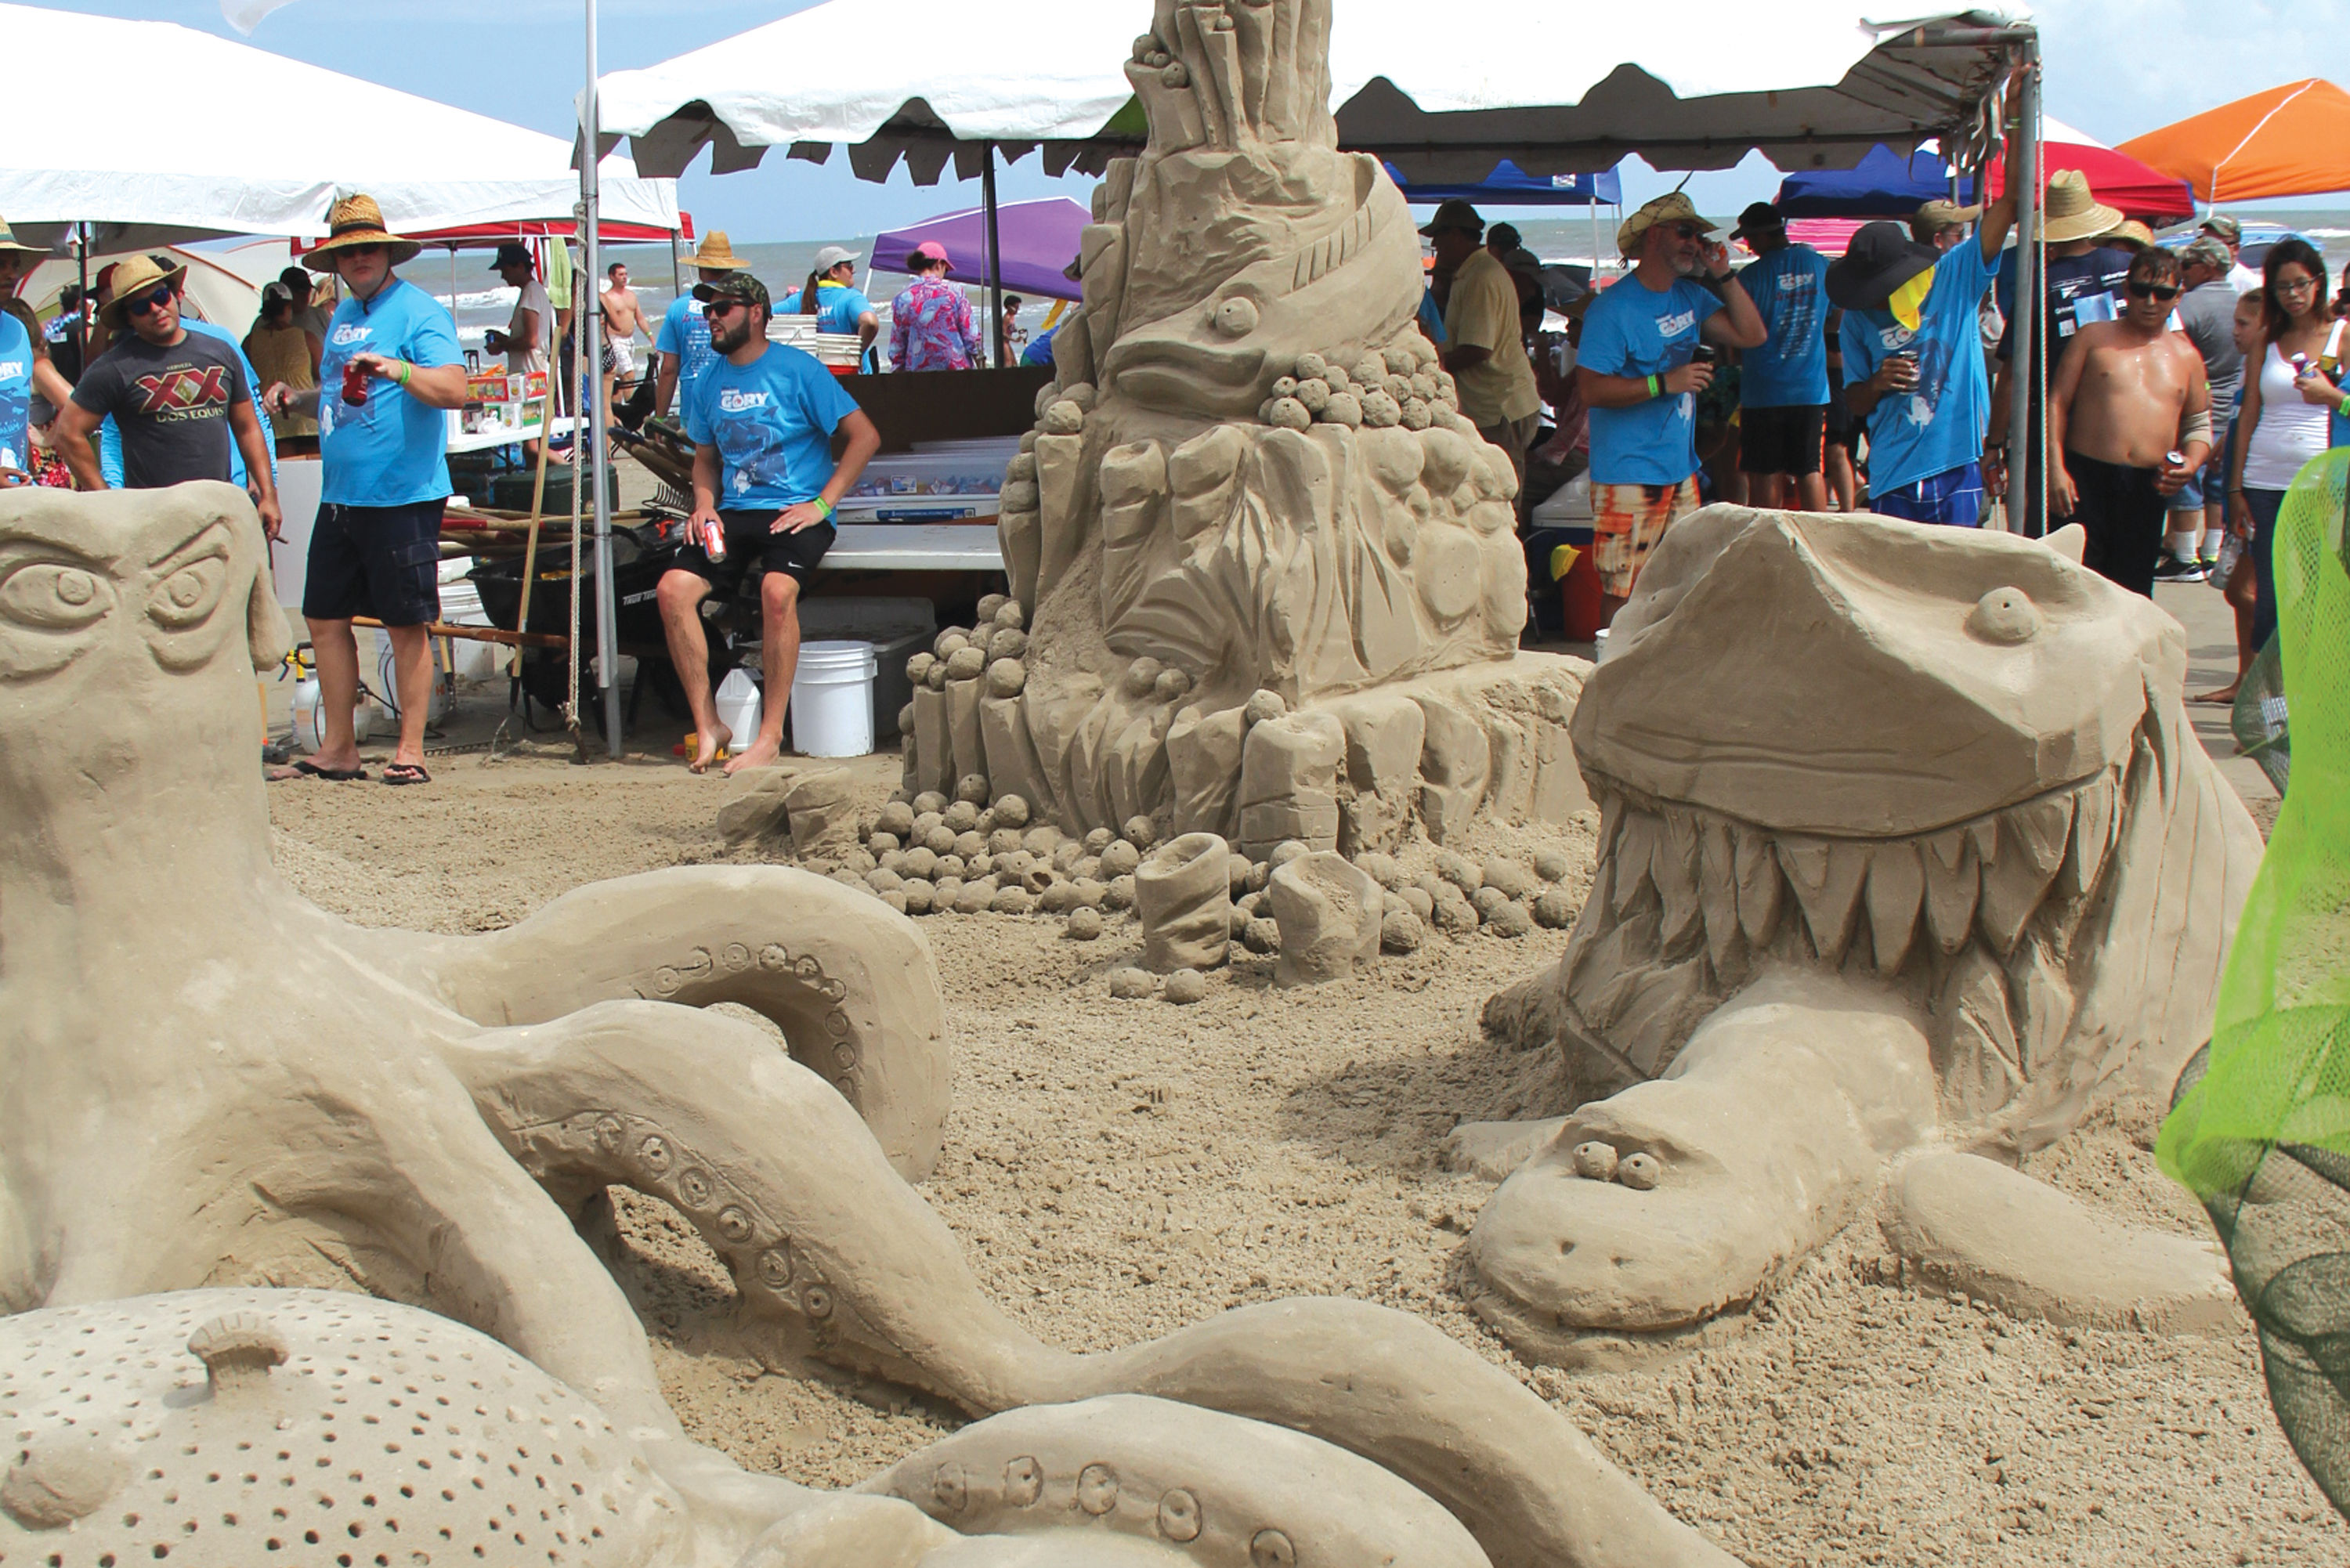 0617 icehouse galveston sandcastle competition 1 bncssp